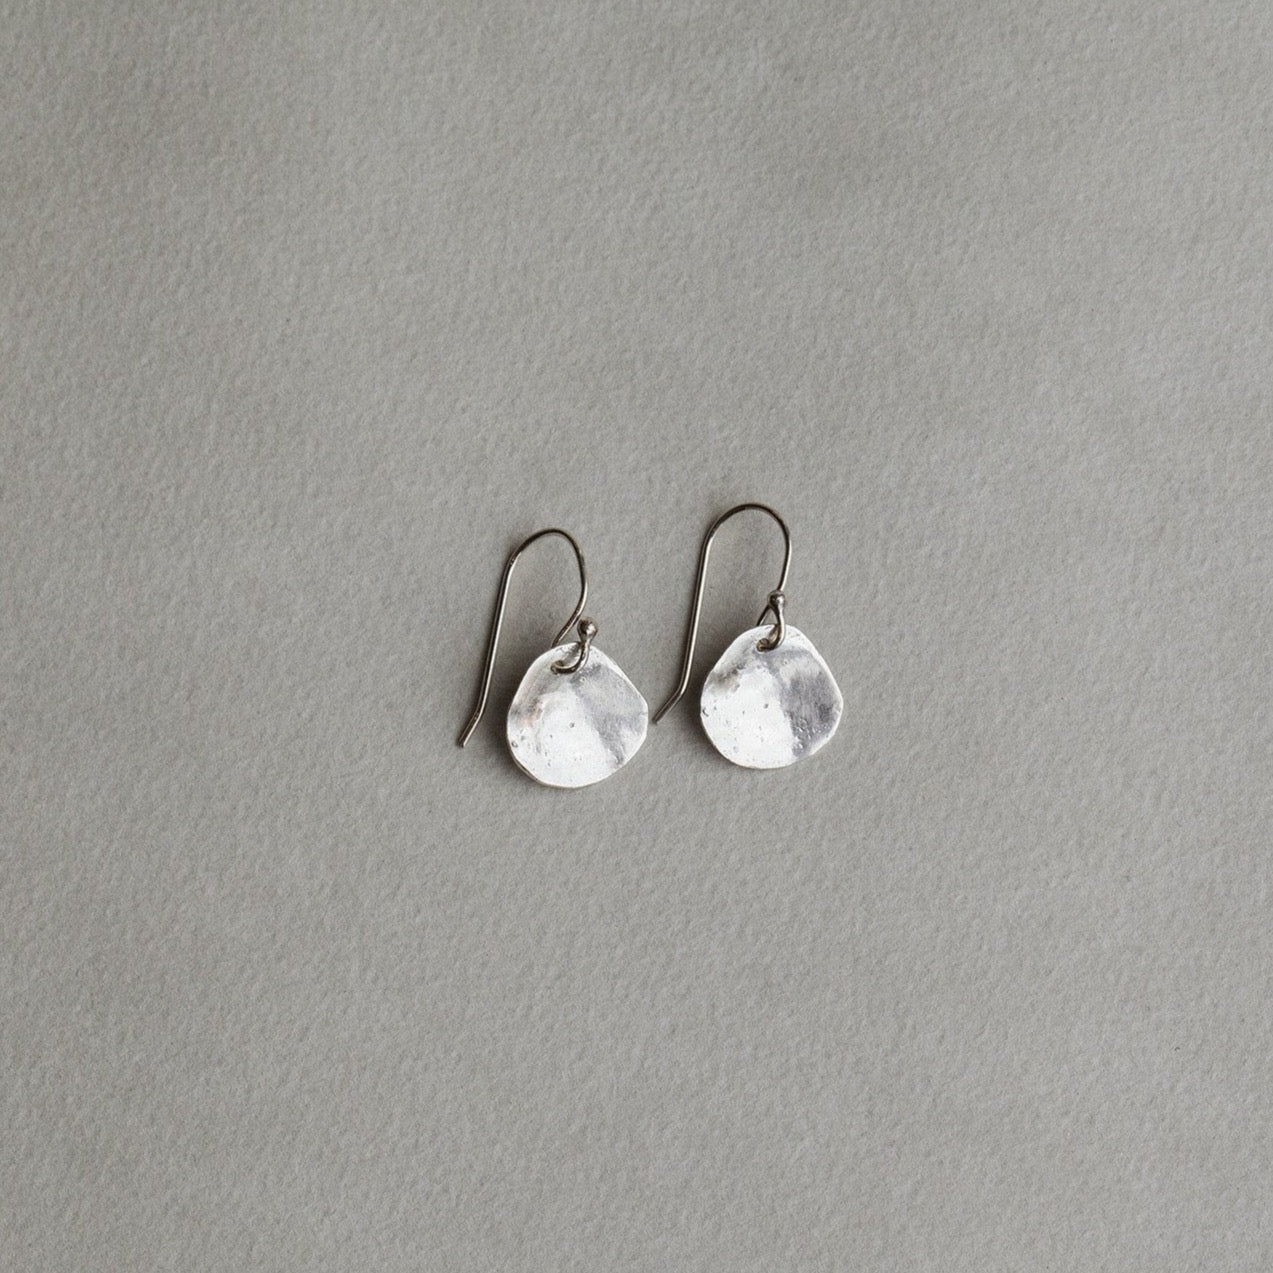 the extraodinary reflectivity of these earrings makes them stand out on virtually anyone